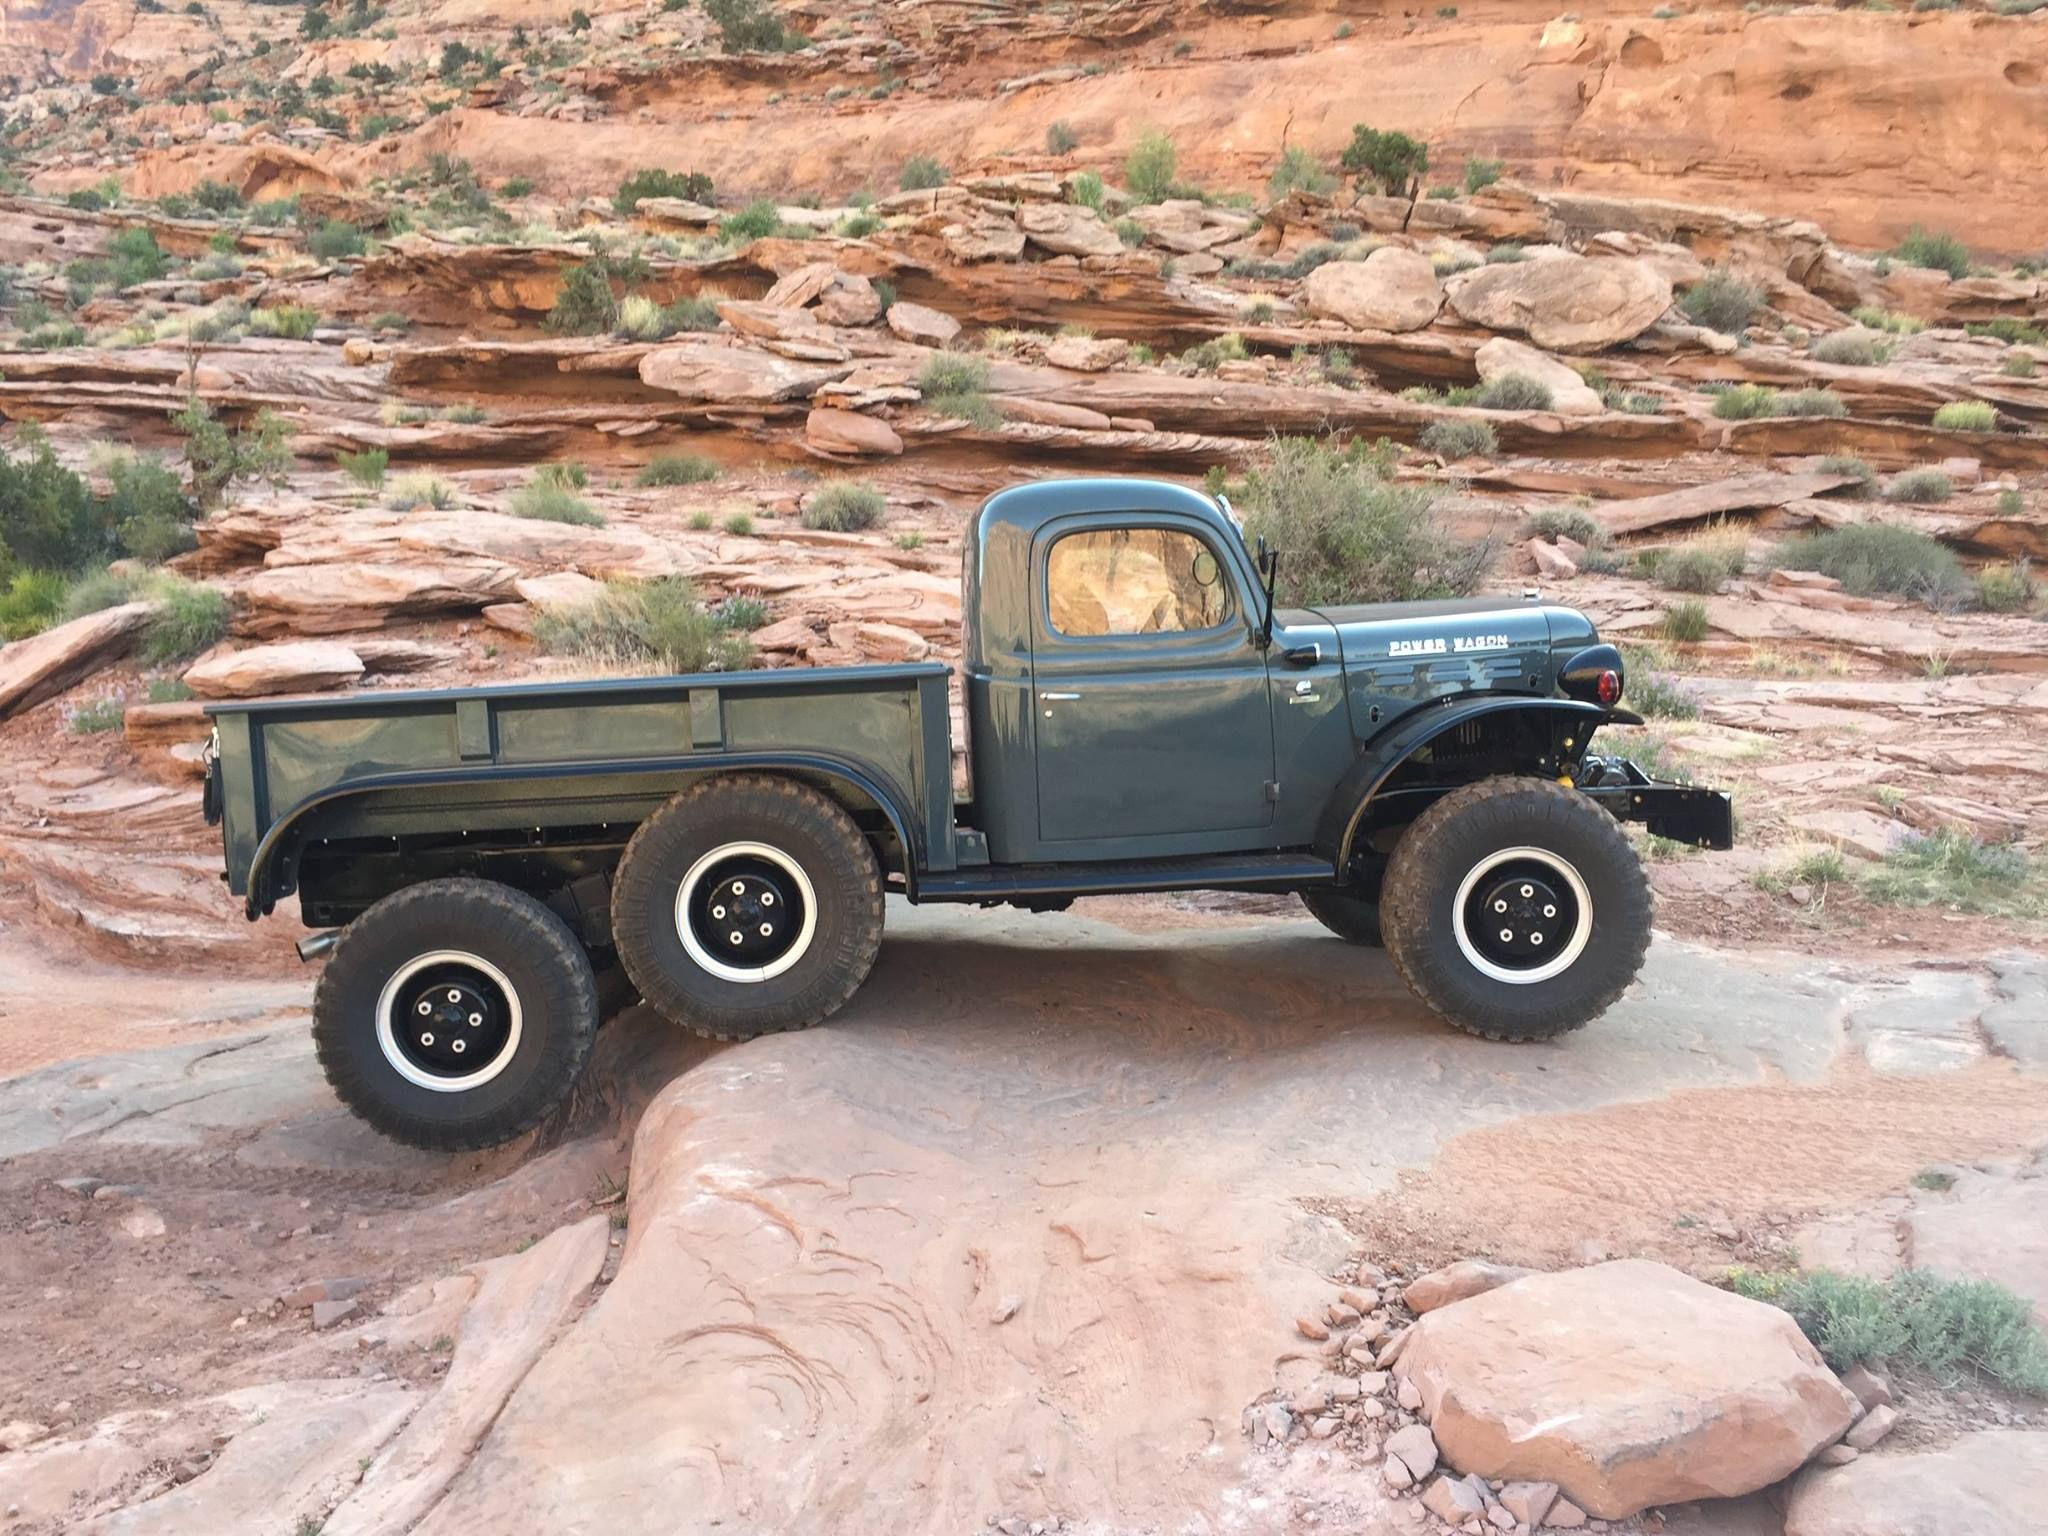 hight resolution of 1942 dodge power wagon wc63 maintenance restoration of old vintage vehicles the material for new cogs casters gears pads could be cast polyamide which i